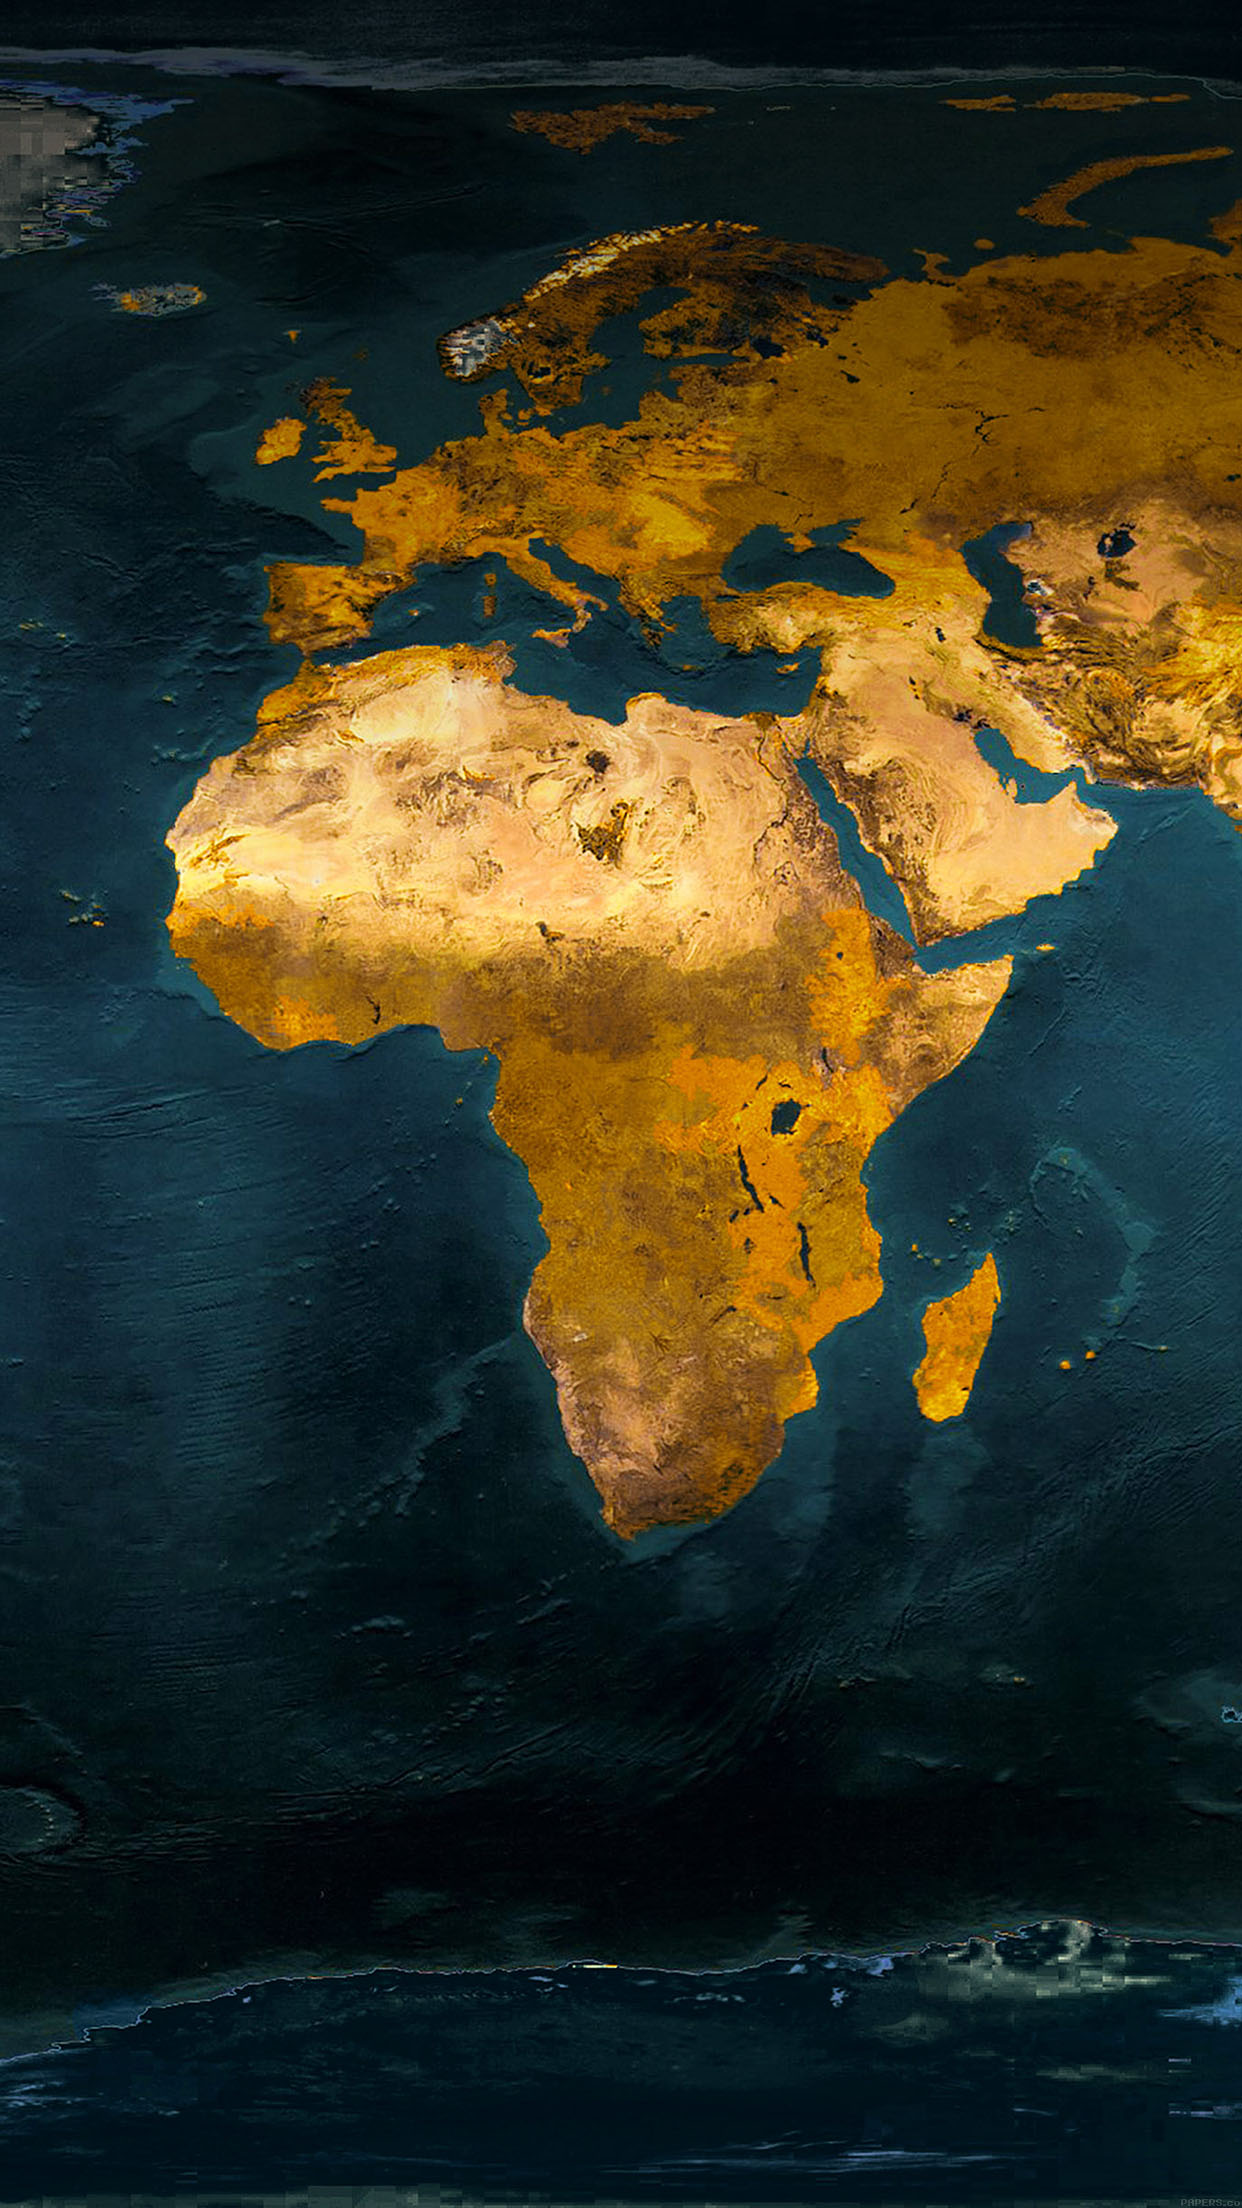 IPhonepapers Aawallpapereuropeandafricaworldmap - World map iphone 6 wallpaper